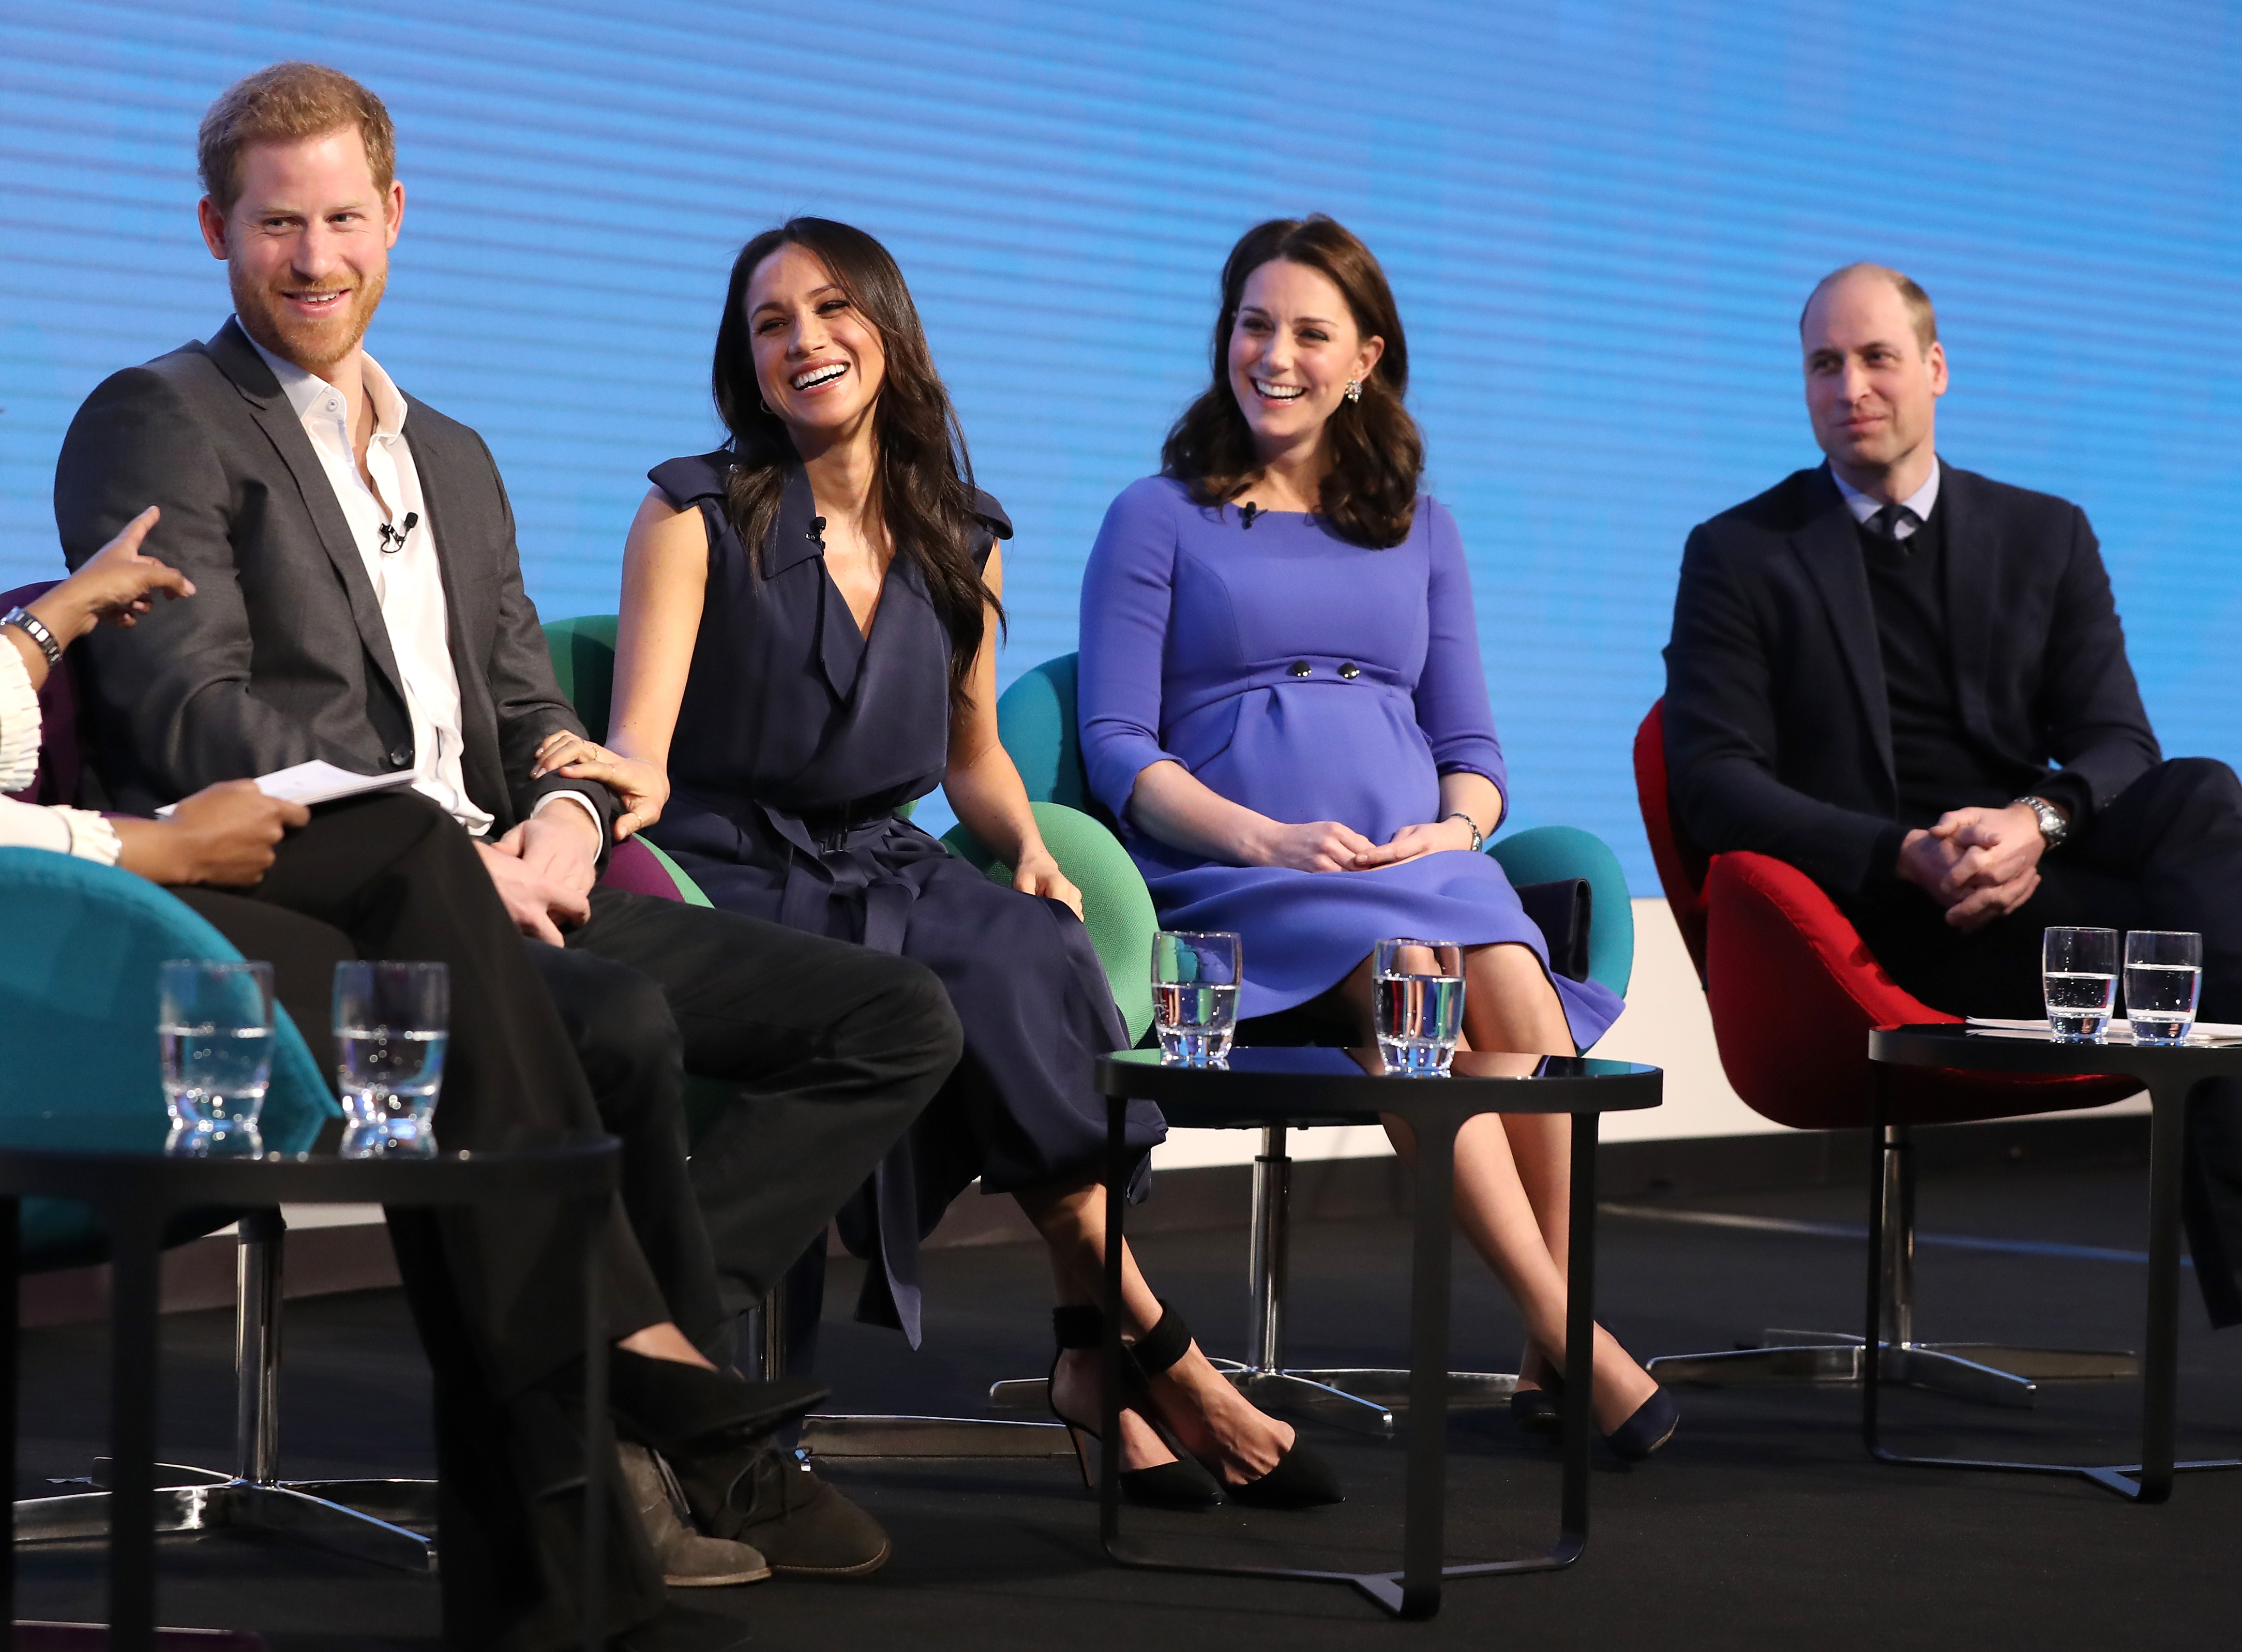 Prince Harry, Meghan Markle, Kate Middleton, Prince William,